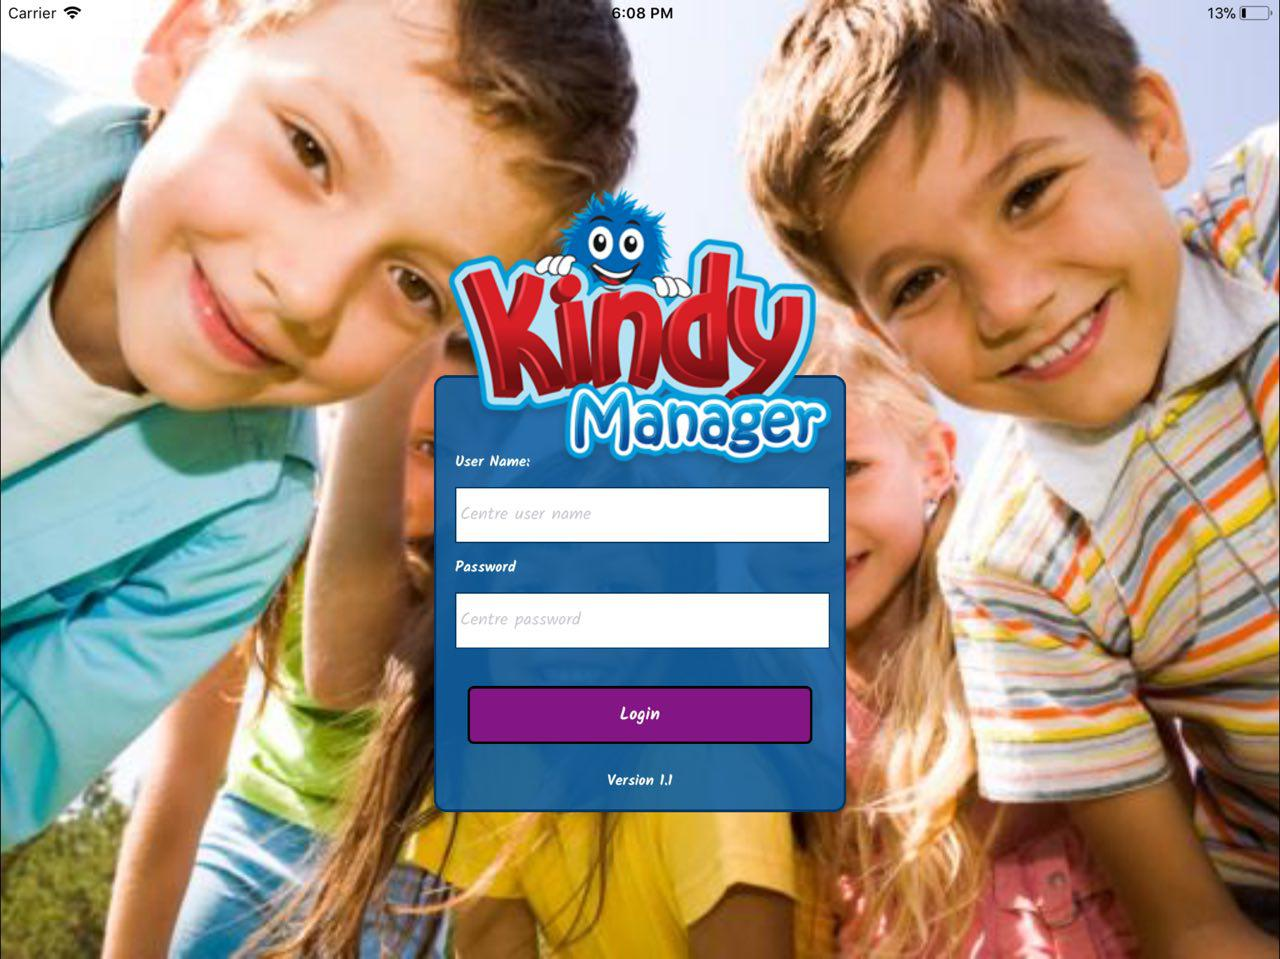 kindy manager kiosk